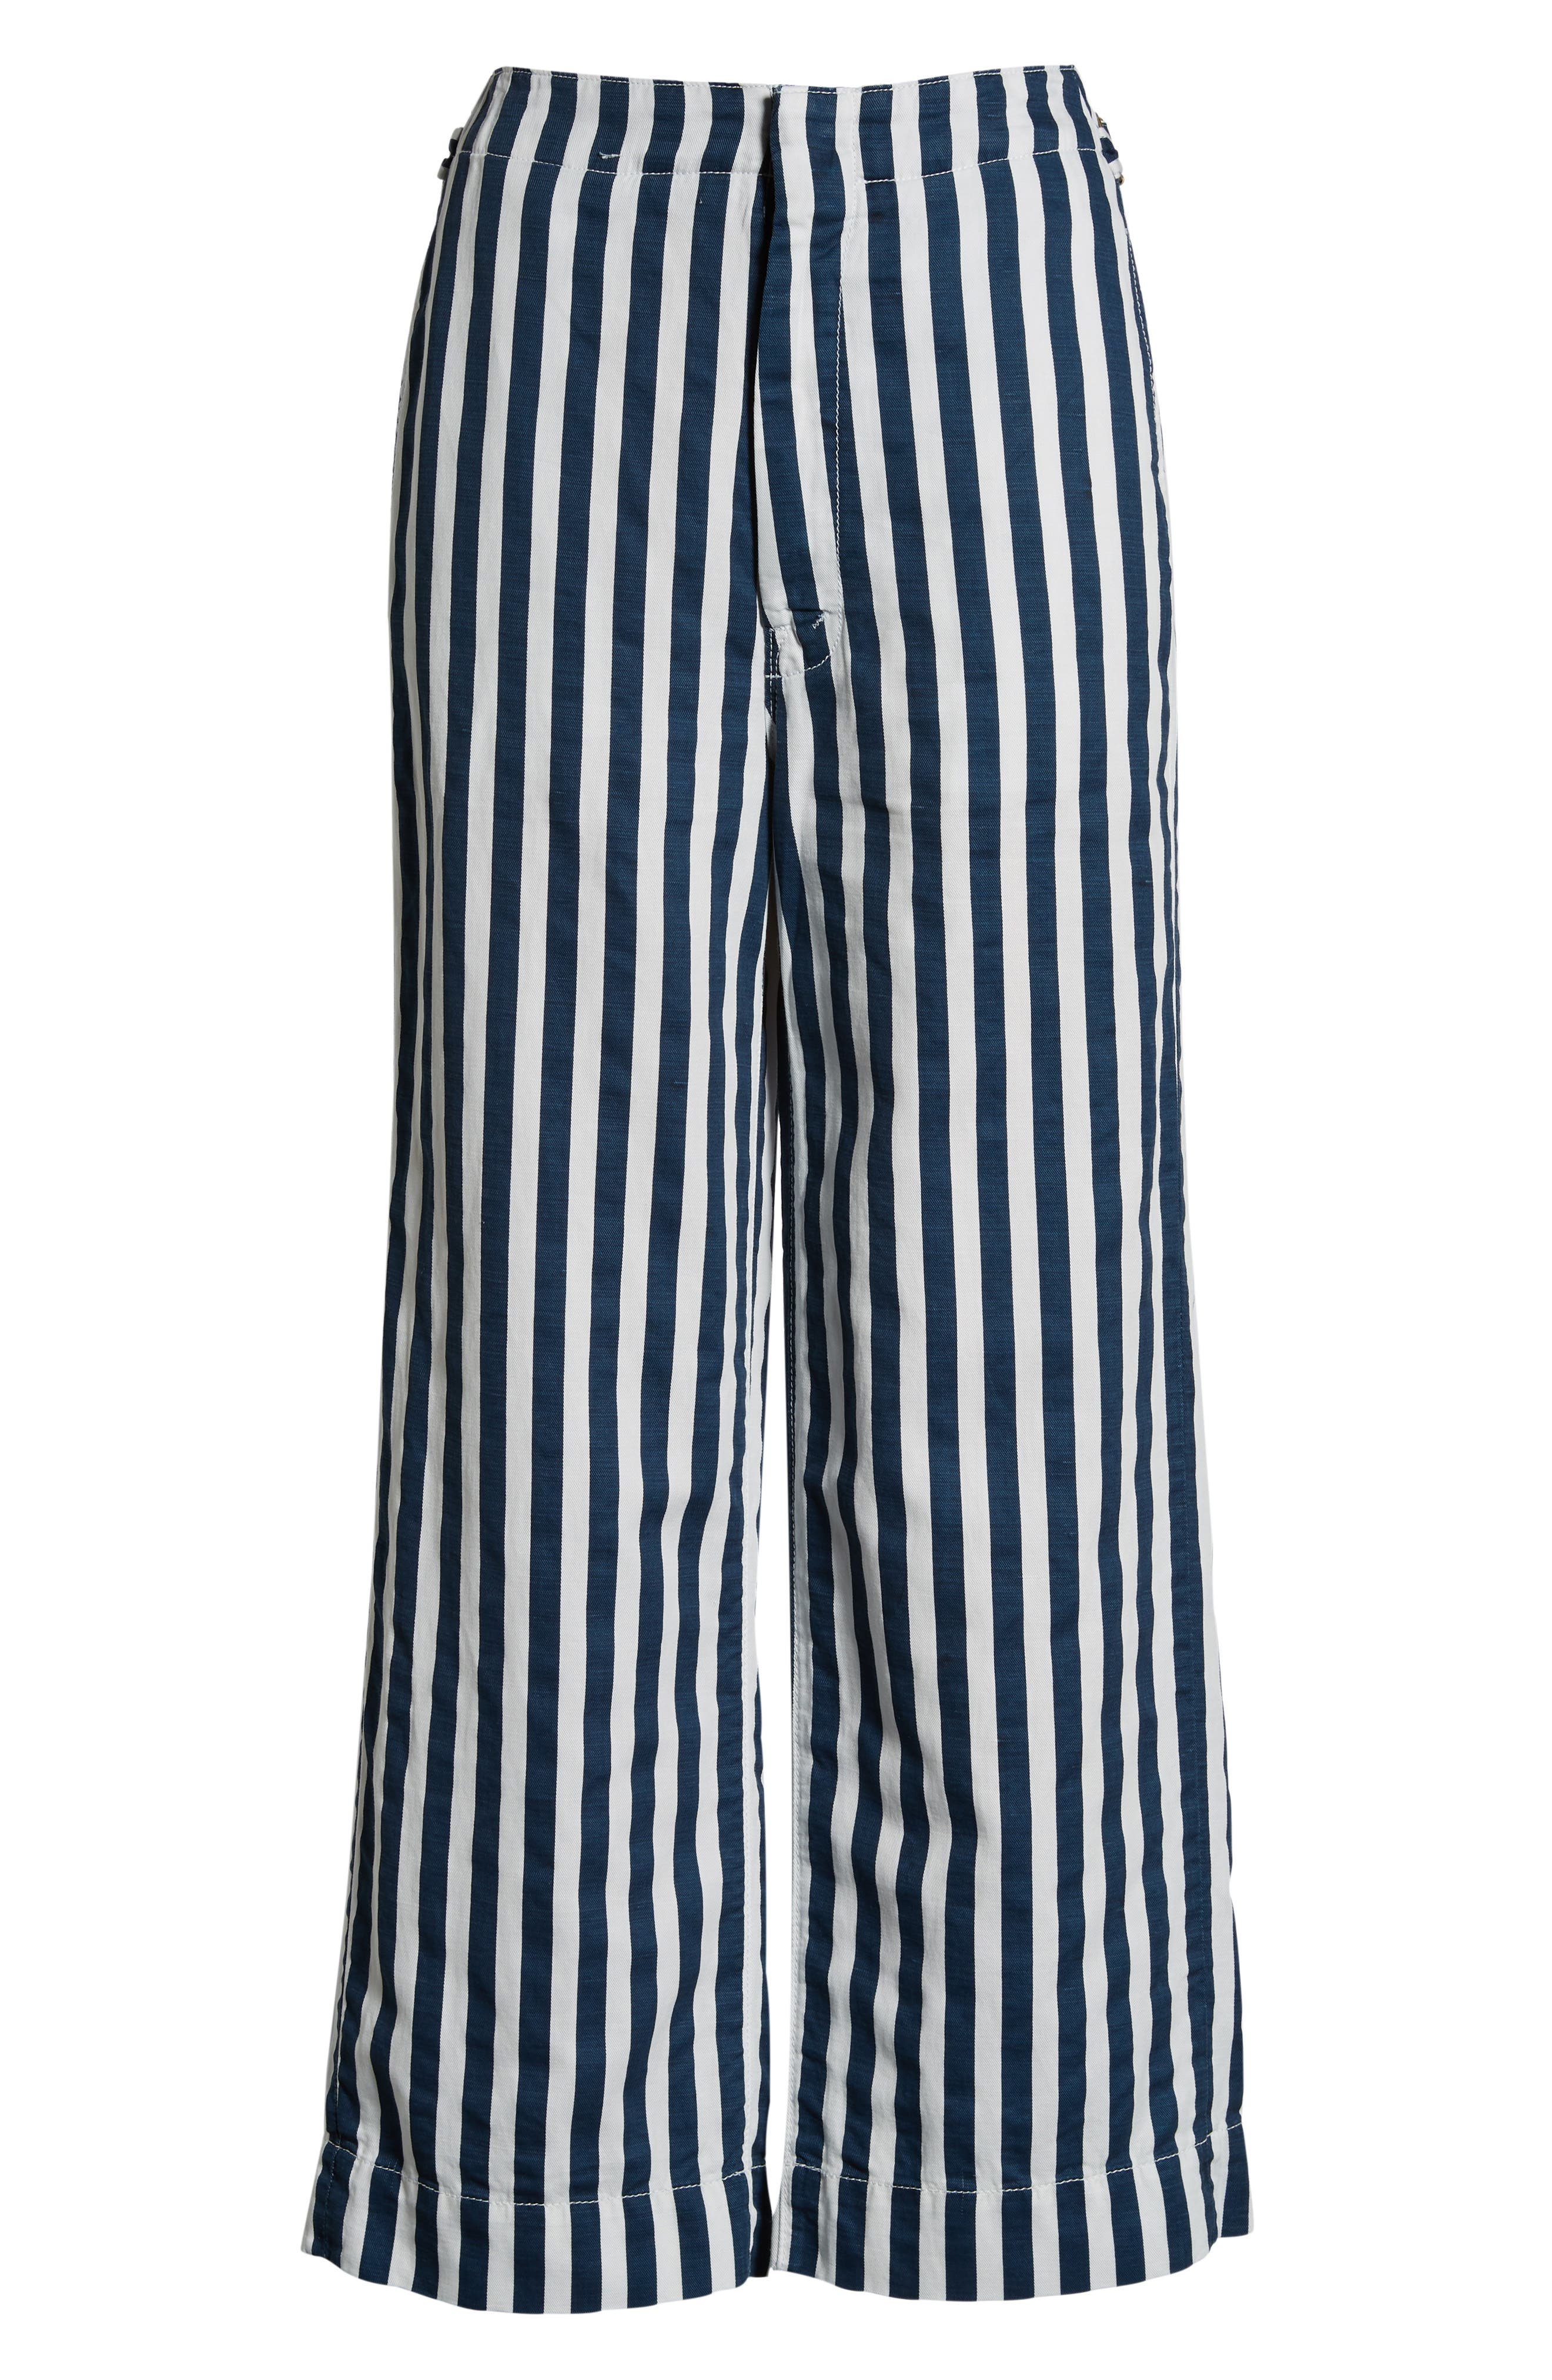 MOTHER, The Cinch Greaser Stripe Pants, Alternate thumbnail 7, color, 110